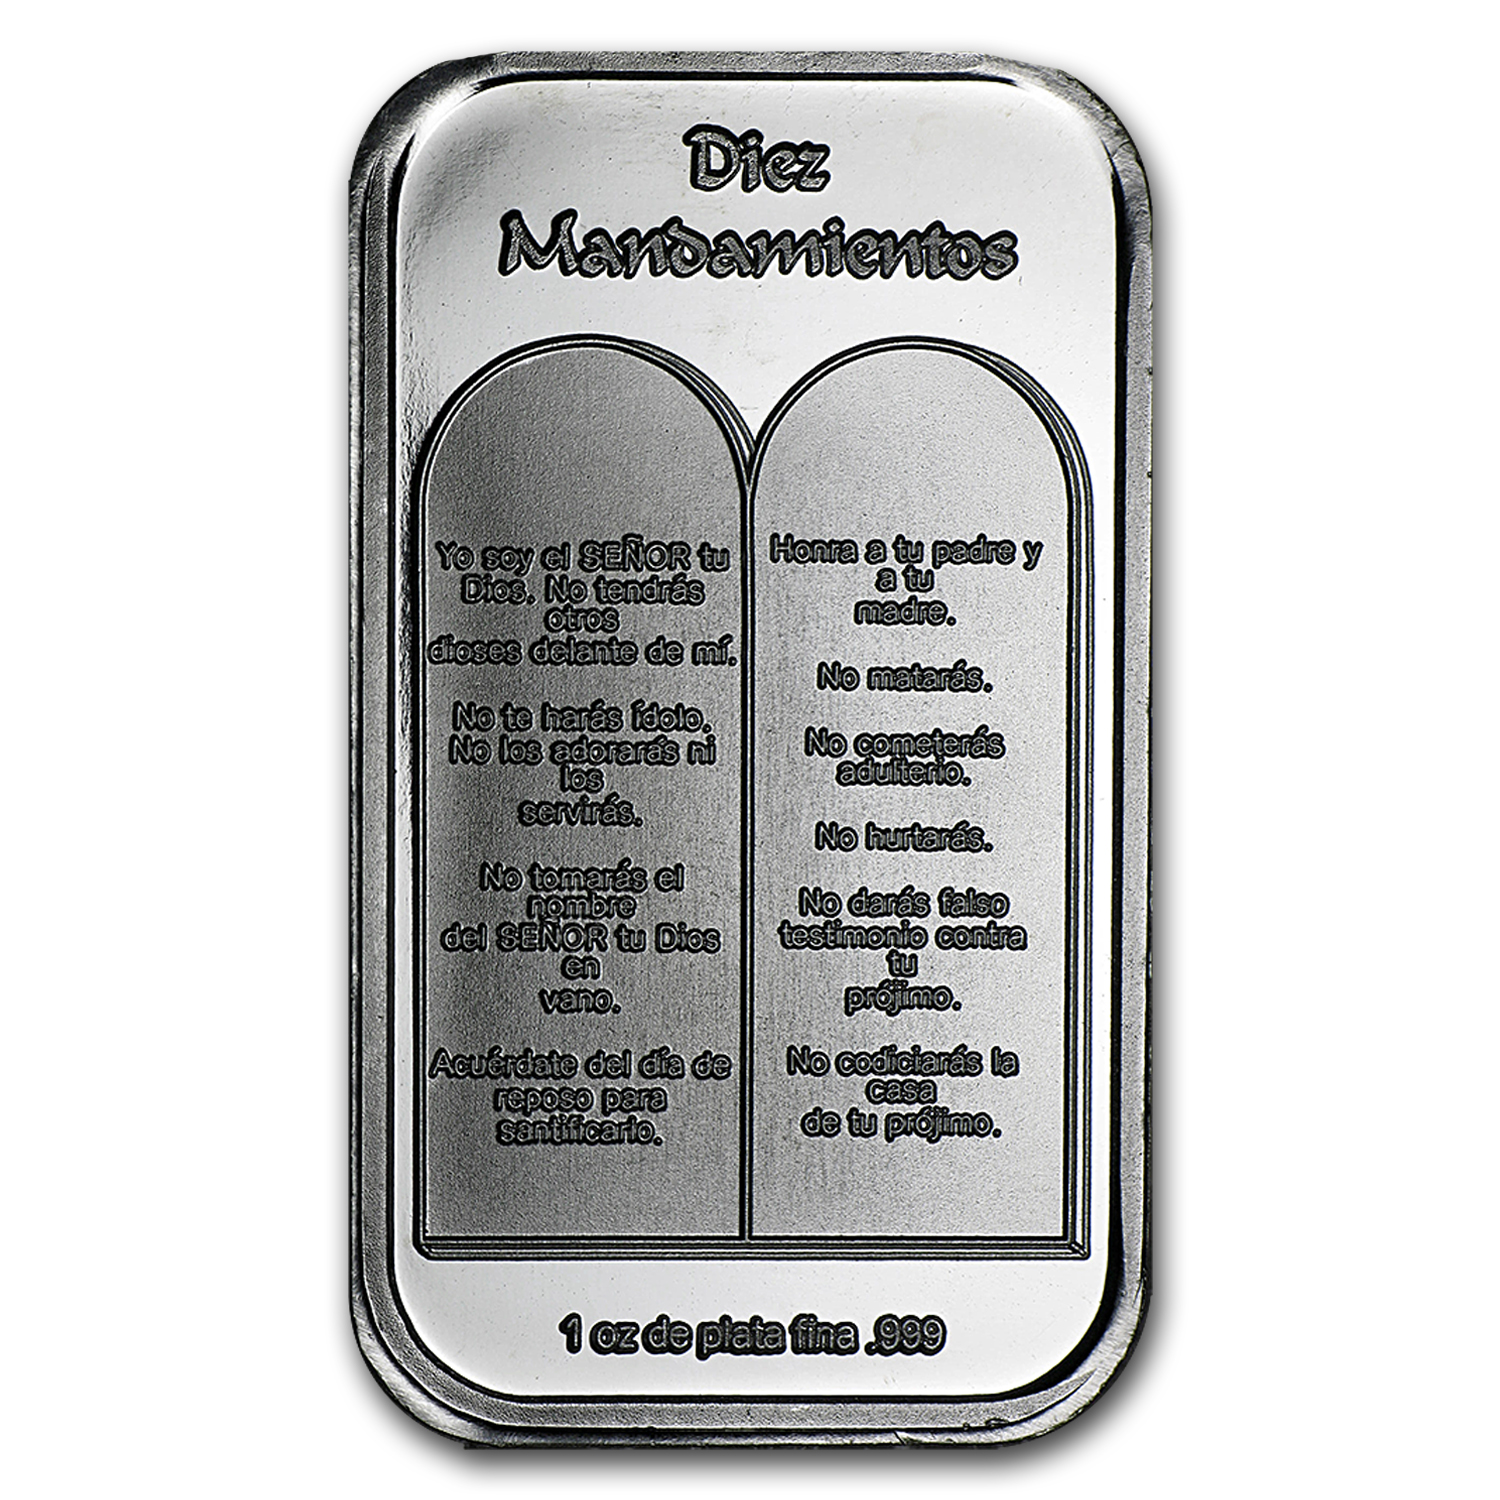 1 oz Silver Bars - Ten Commandments (Spanish)